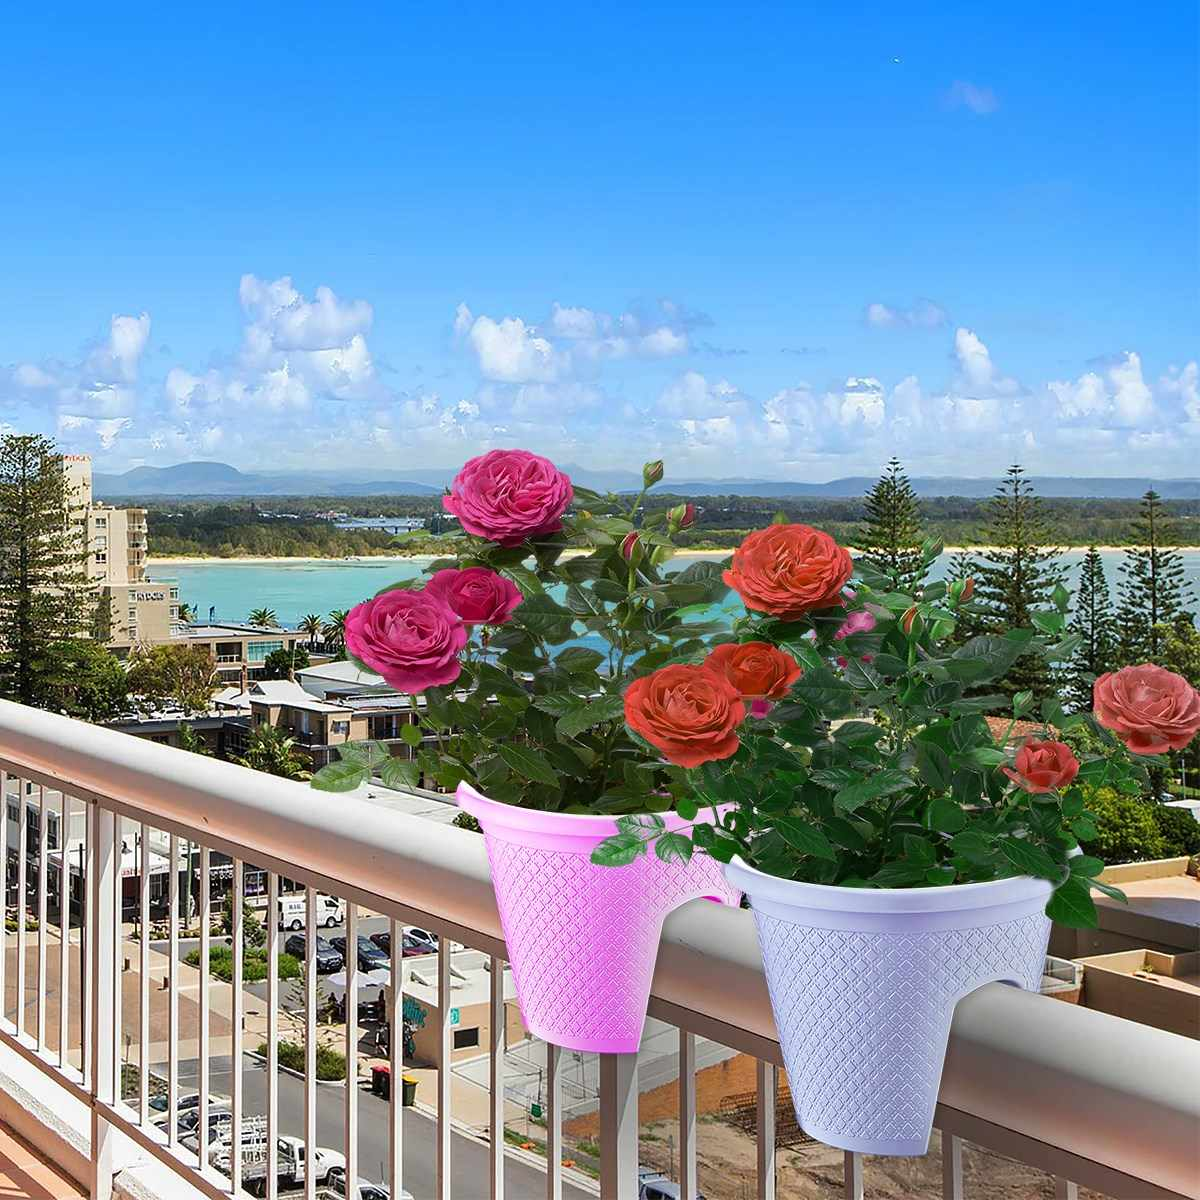 Balcony Railing Planter For Small Balcony Locked Type Decoration Plastic English Made Mixed Colors Set Of 2 Flower Pots Planters Aliexpress